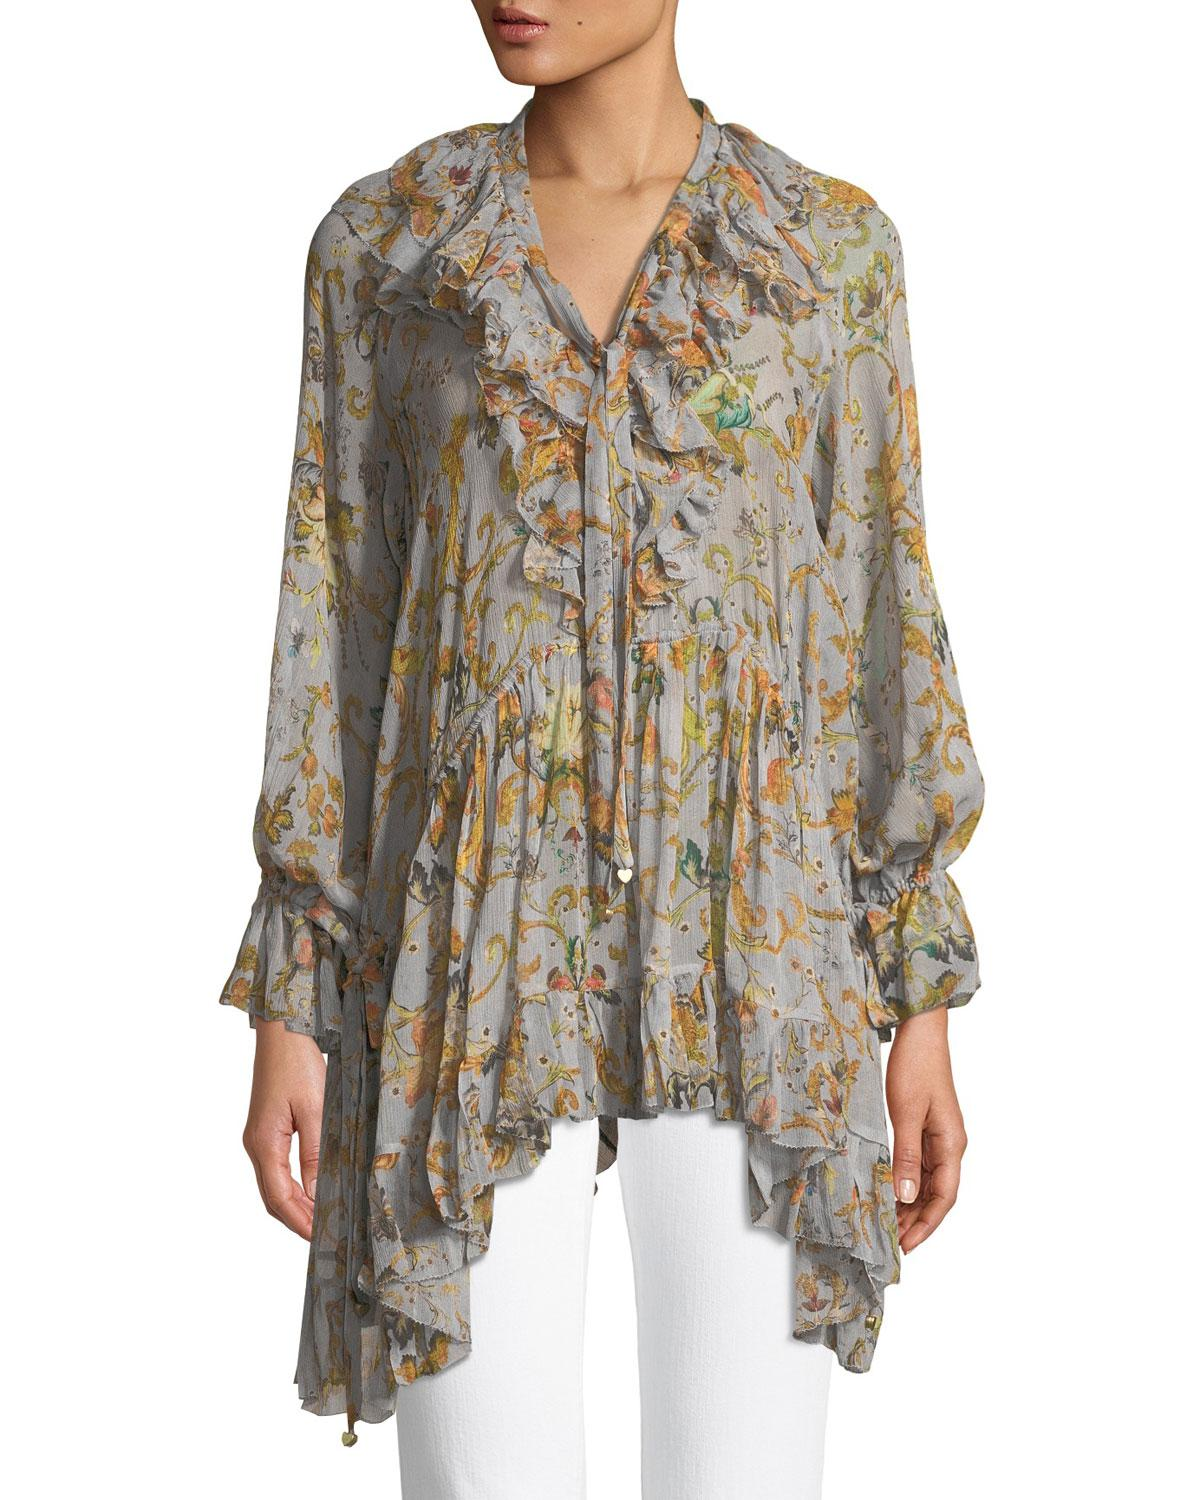 Cheap With Credit Card Clearance Deals Painted Heart floral-print ruffled silk top Zimmermann Shopping Online Outlet Sale G3m7tPmd